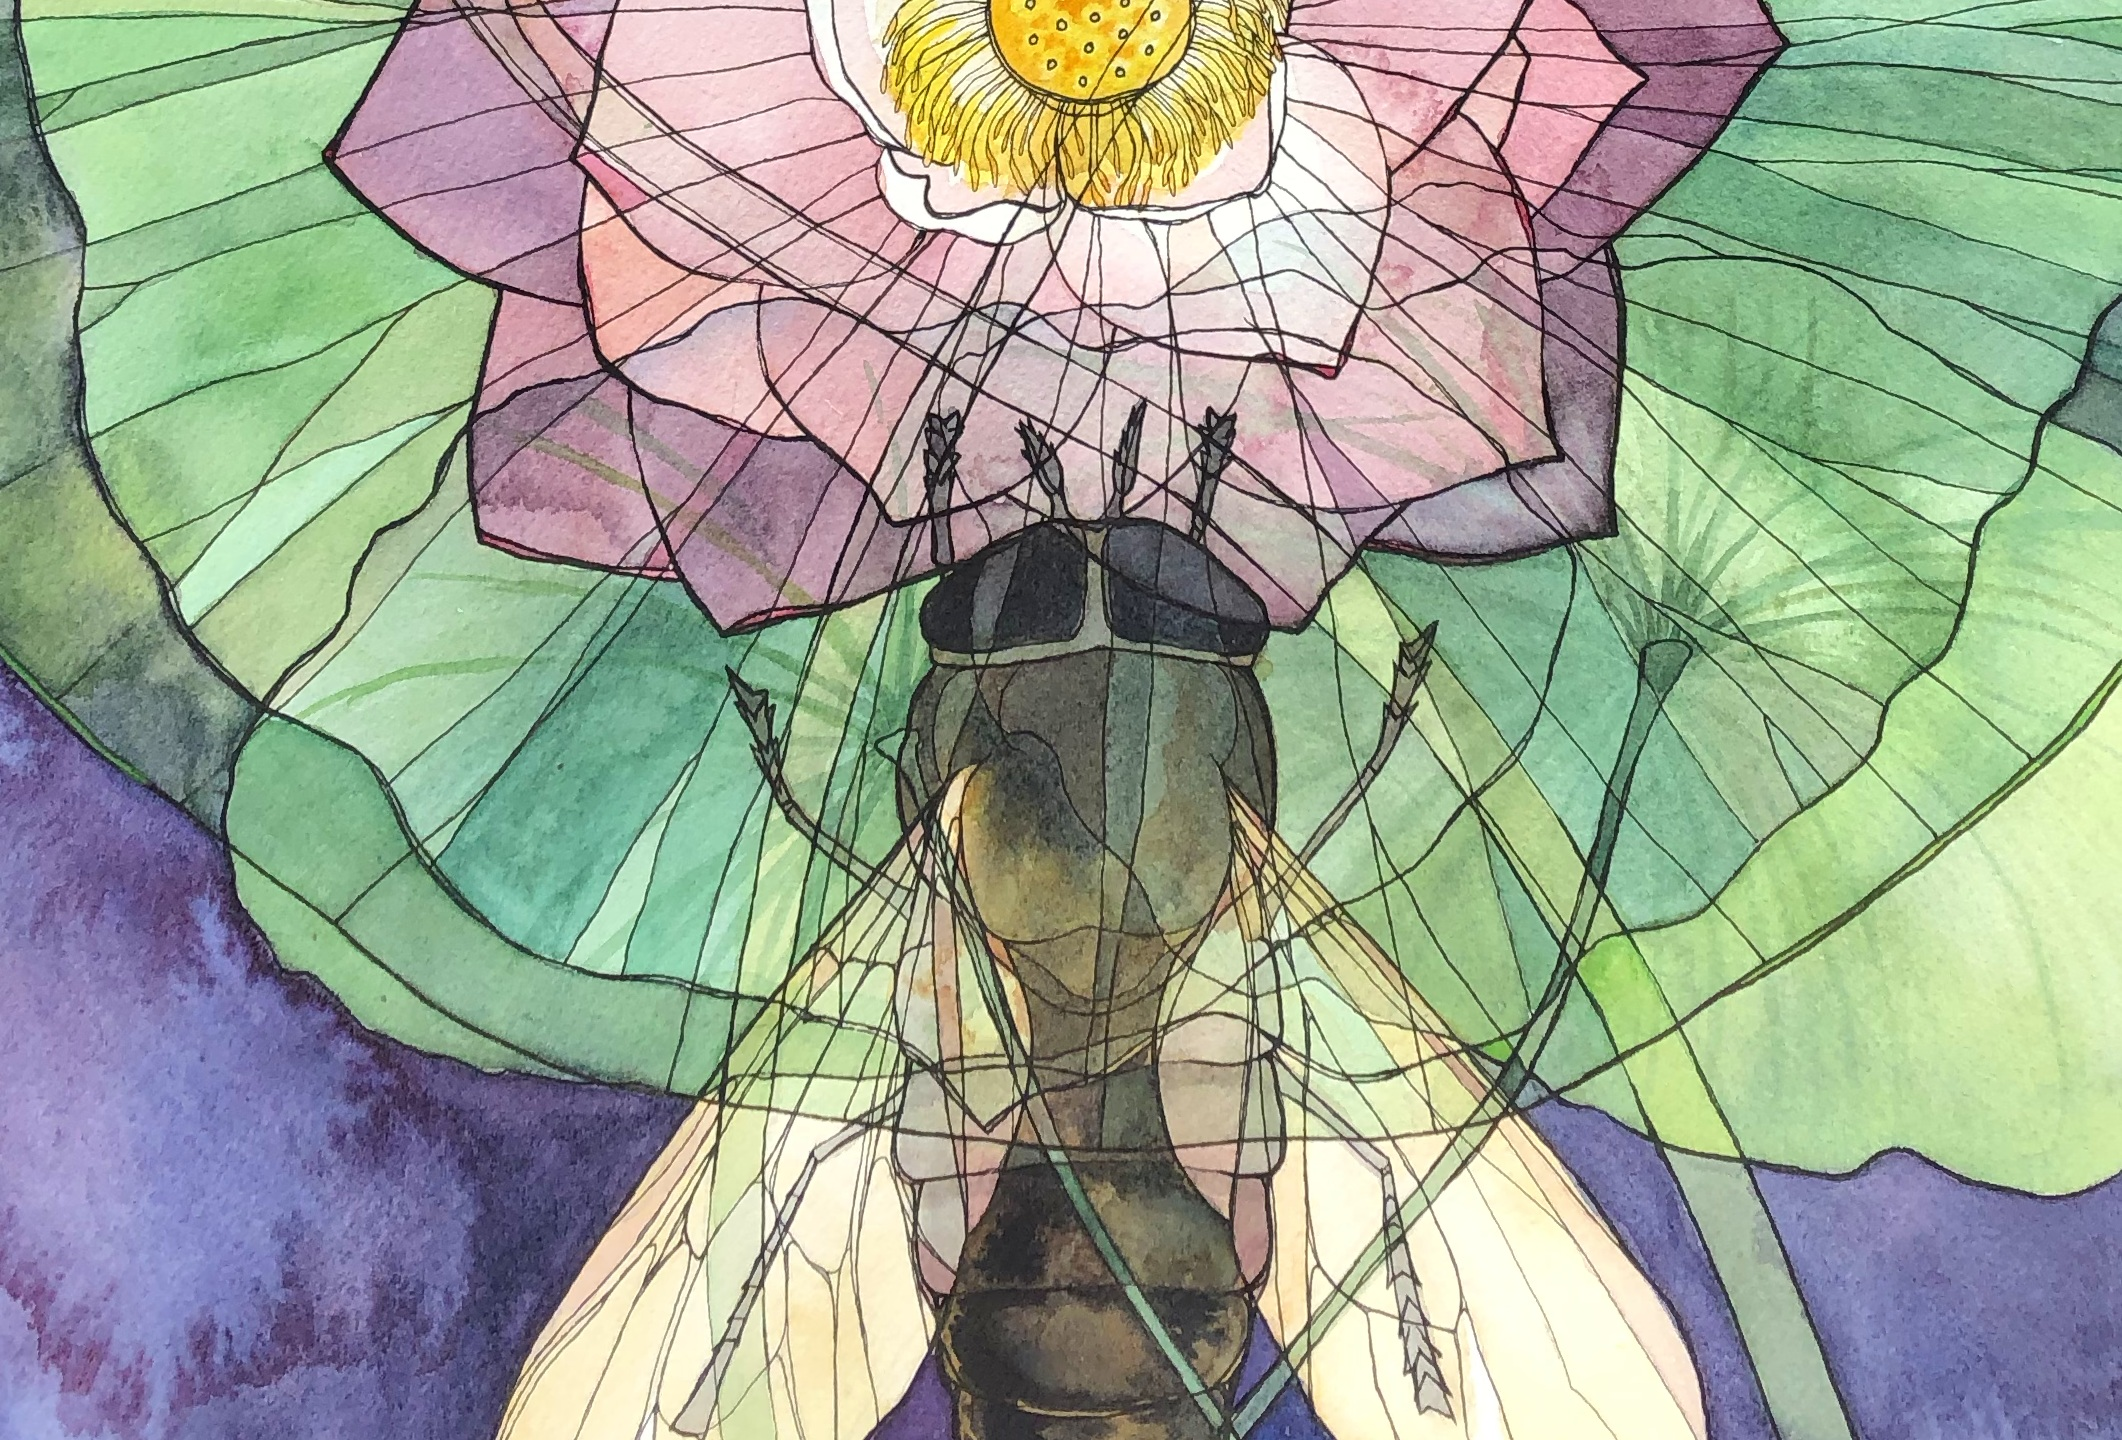 Gadfly x Lotus (Tabanus bovinus x Nelumbo nucifera), 2019. Ink and watercolor on paper.